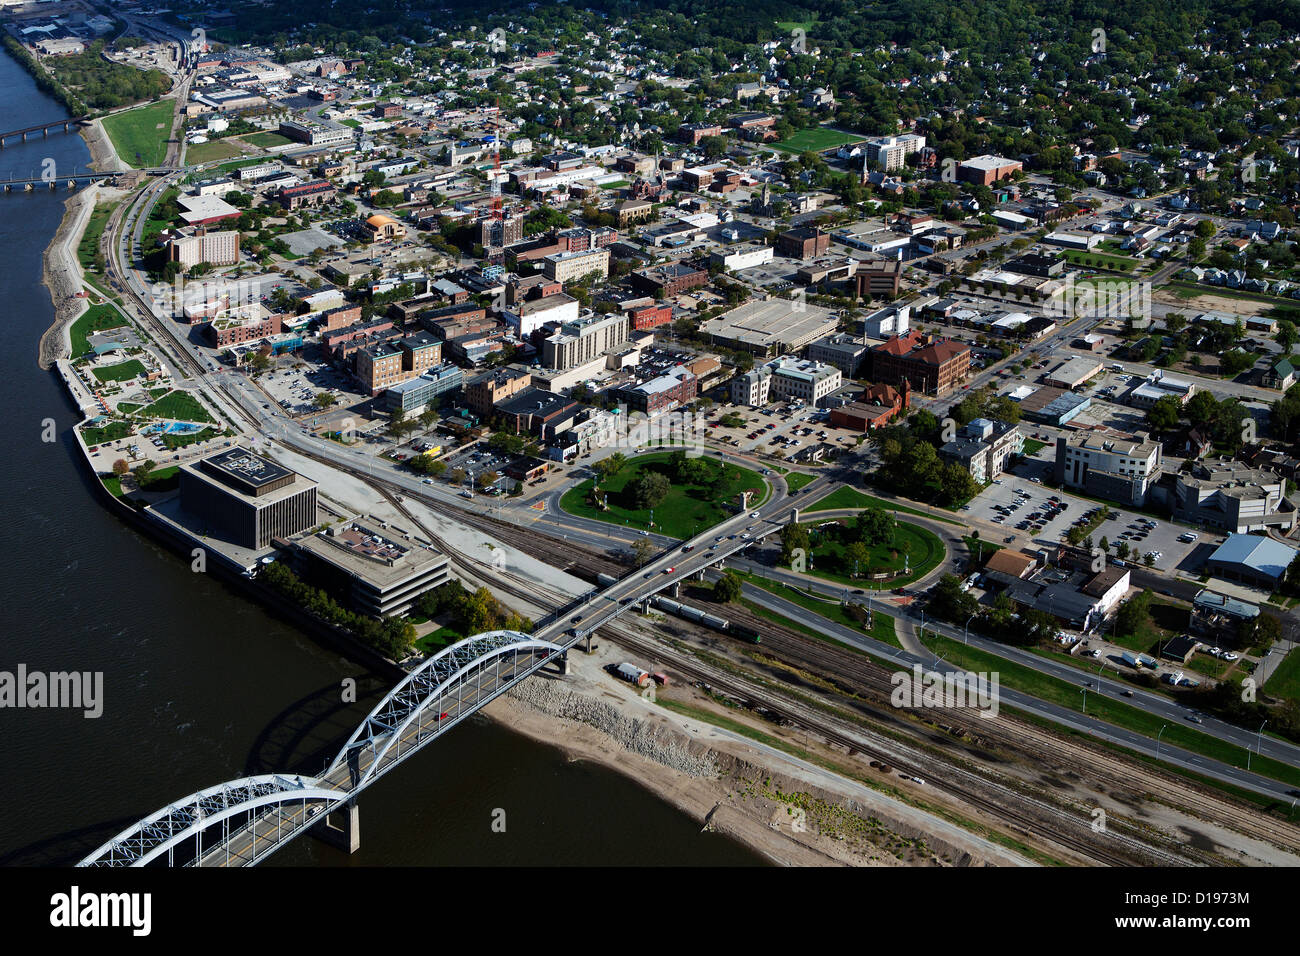 aerial photograph of Rock Island, Illinois - Stock Image